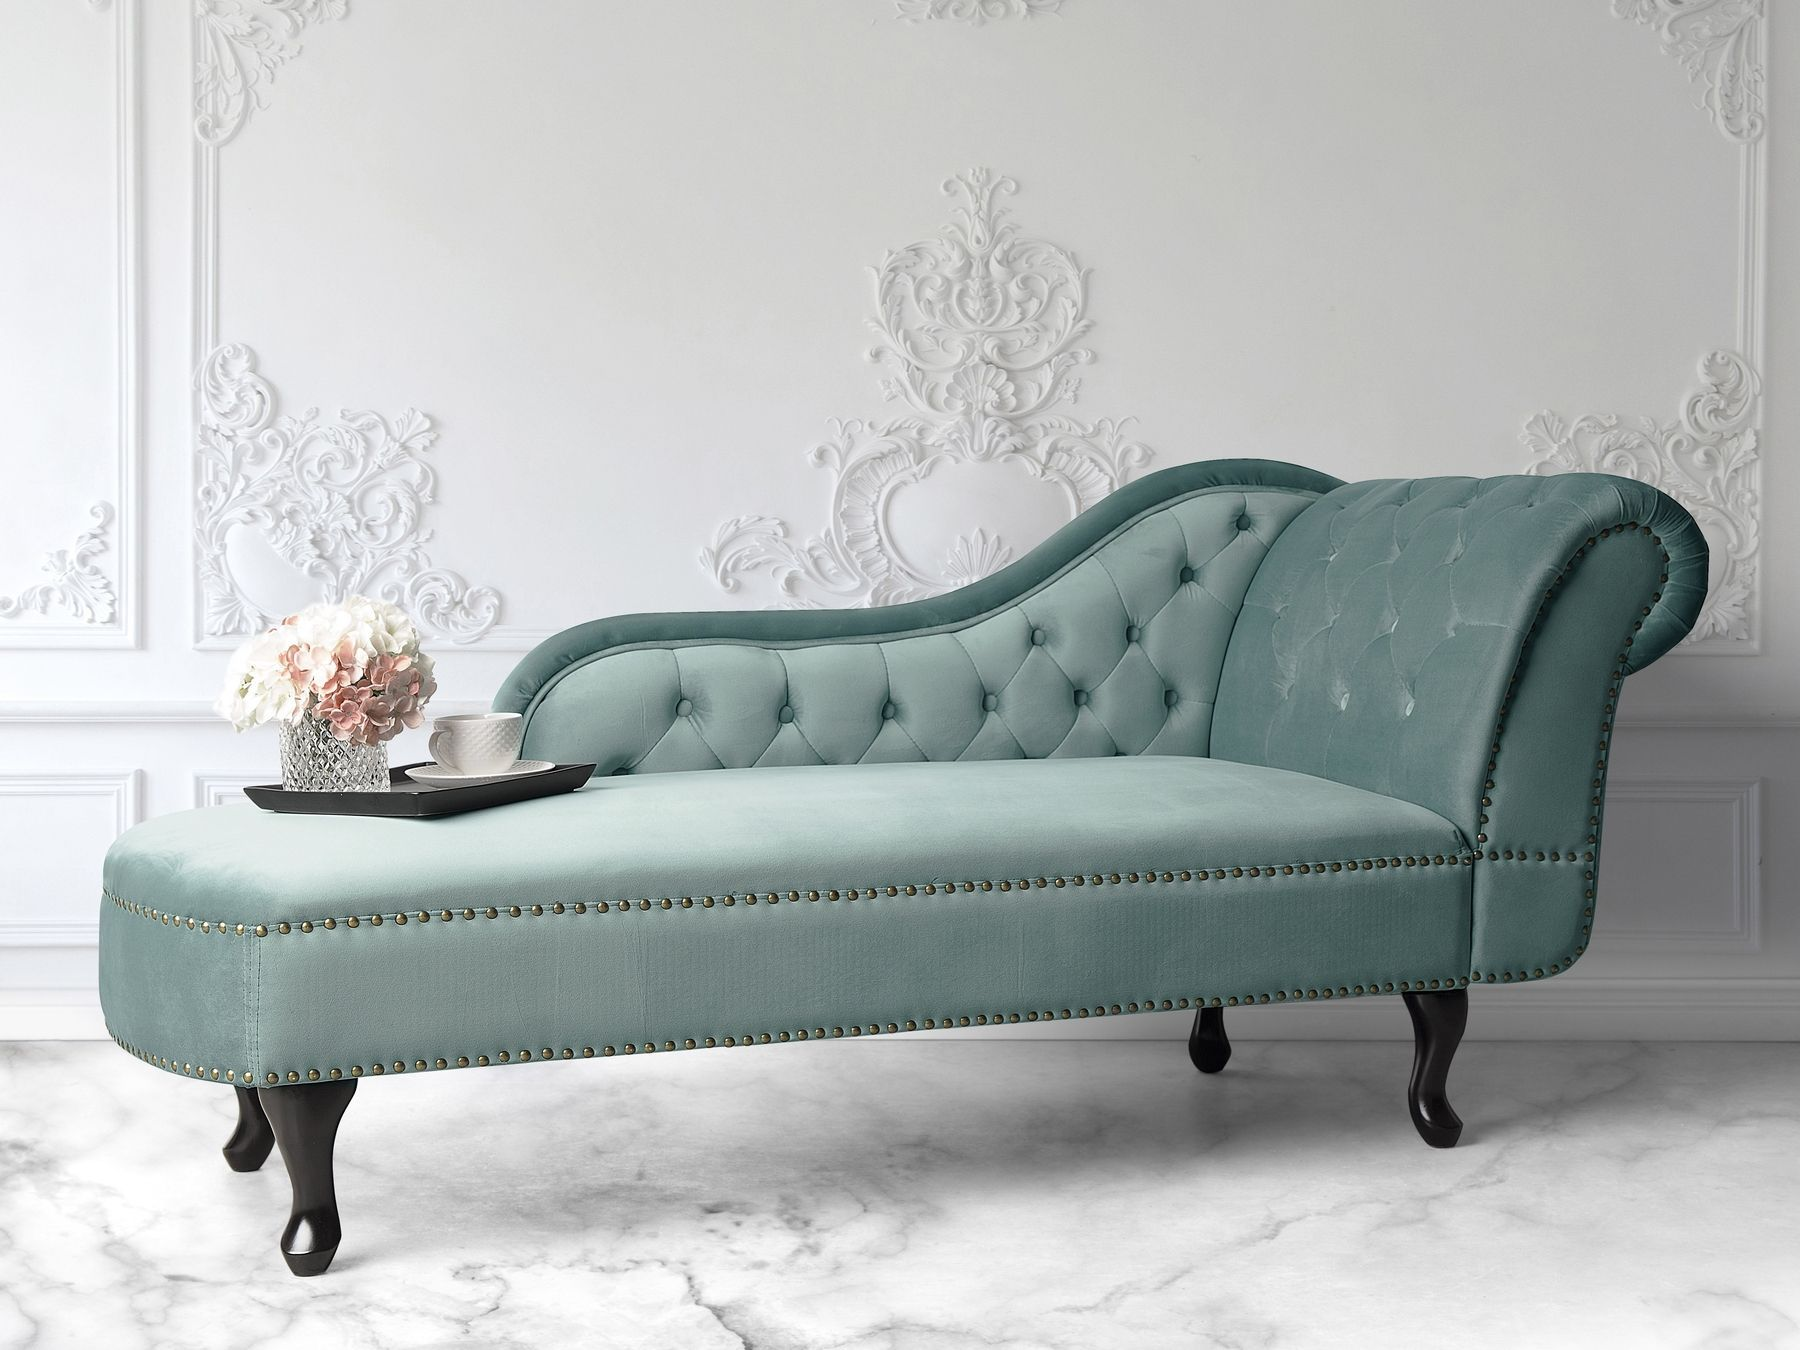 Pin By Allana Silva On Shizlung In 2020 Upholstered Chaise Chaise Lounge Tufted Chaise Lounge